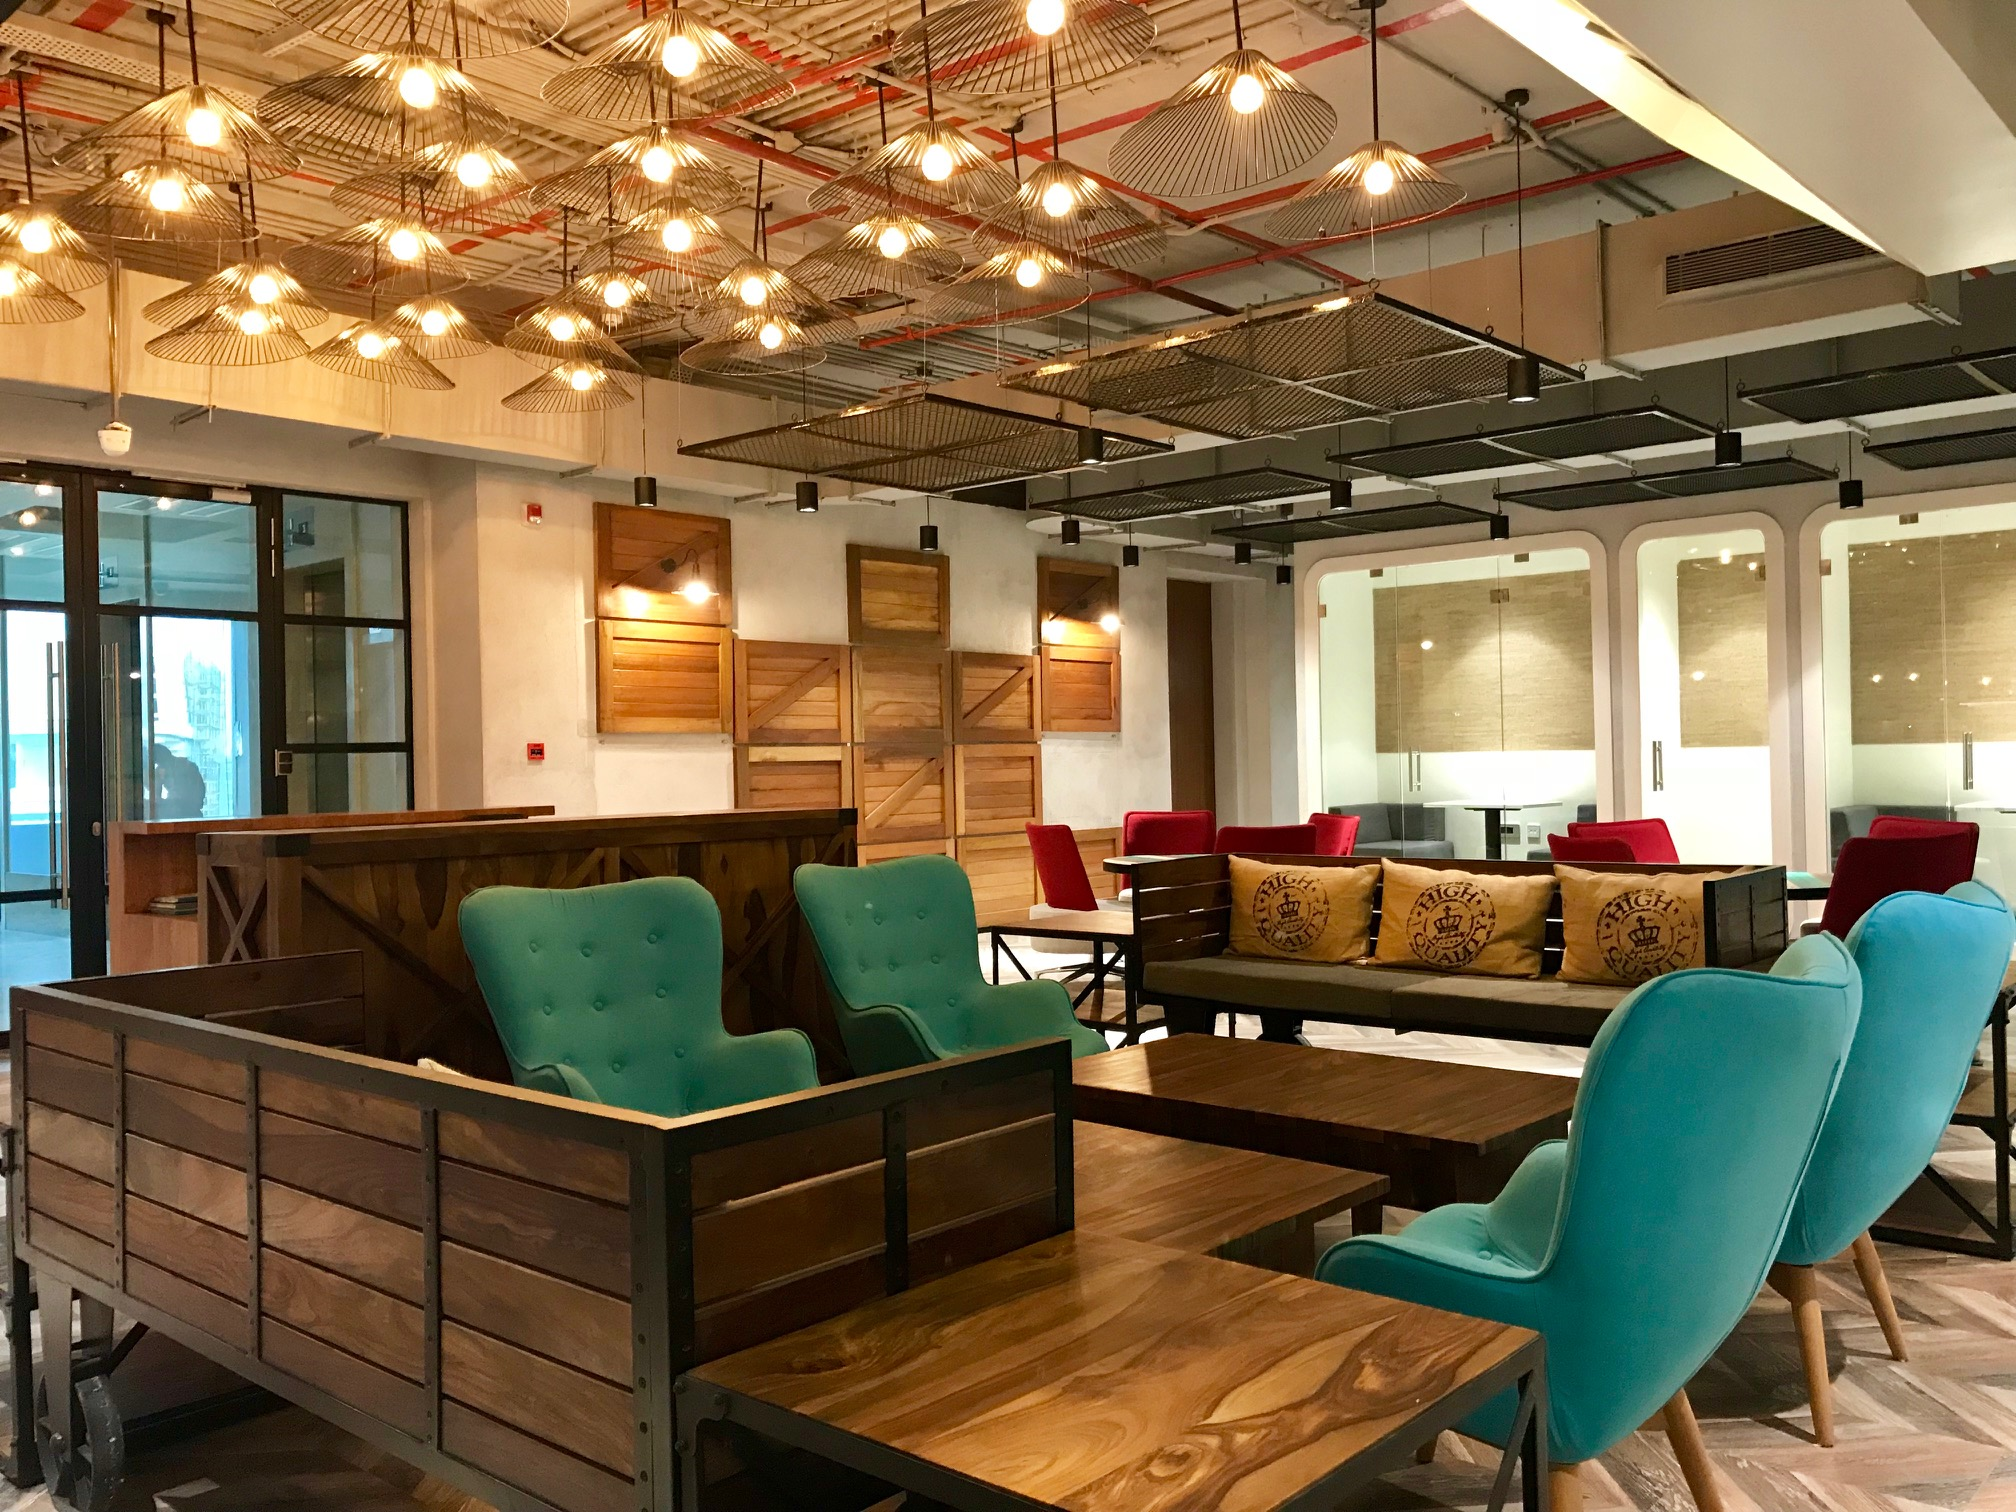 India's Largest Co-Working Startup Is Almost Profitable (No, It's Not WeWork)